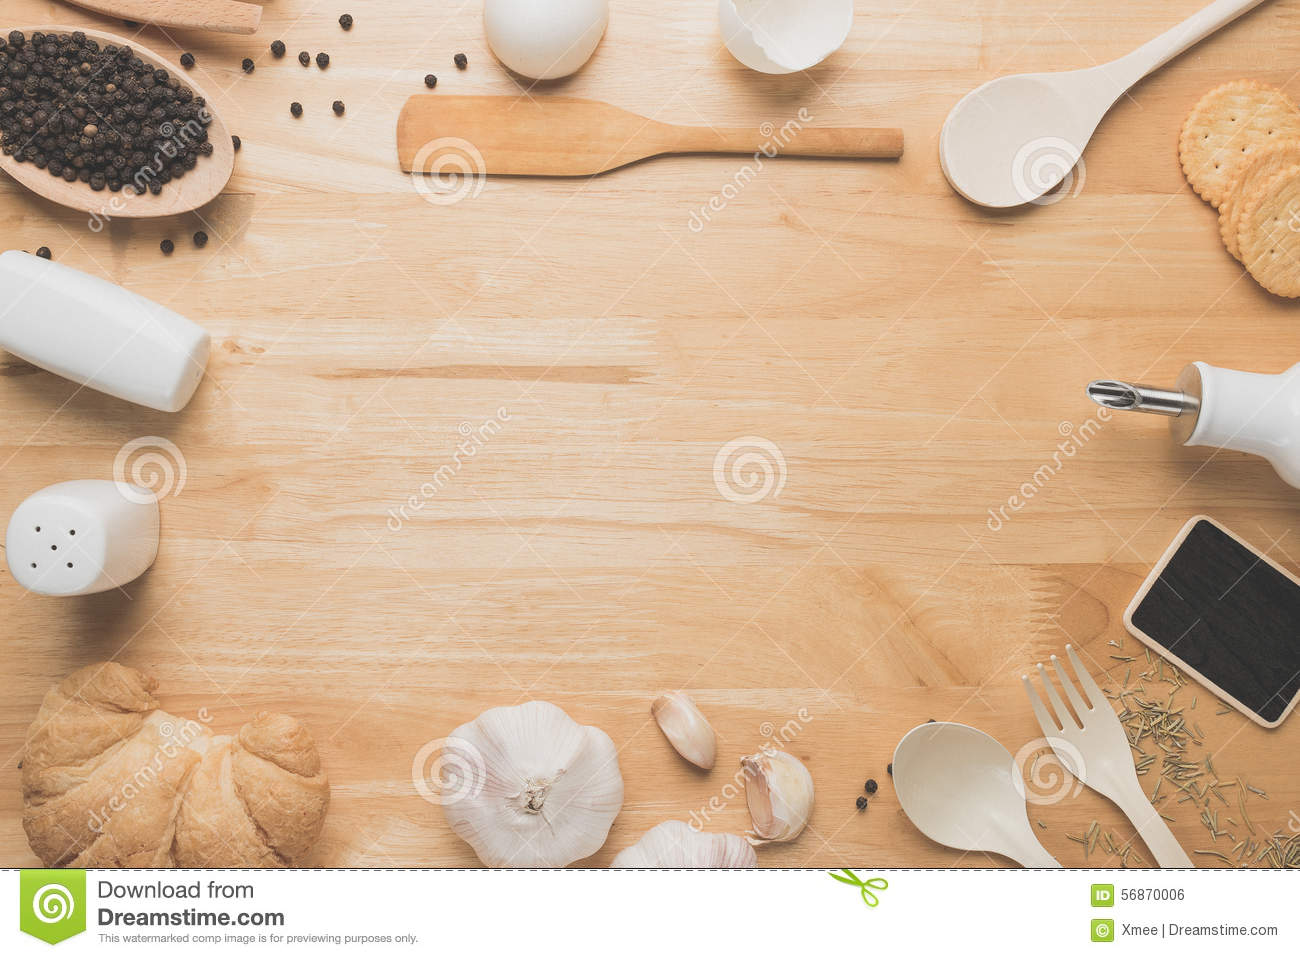 Kitchen Utensils Background top view kitchen mockup,rural kitchen utensils on wooden table